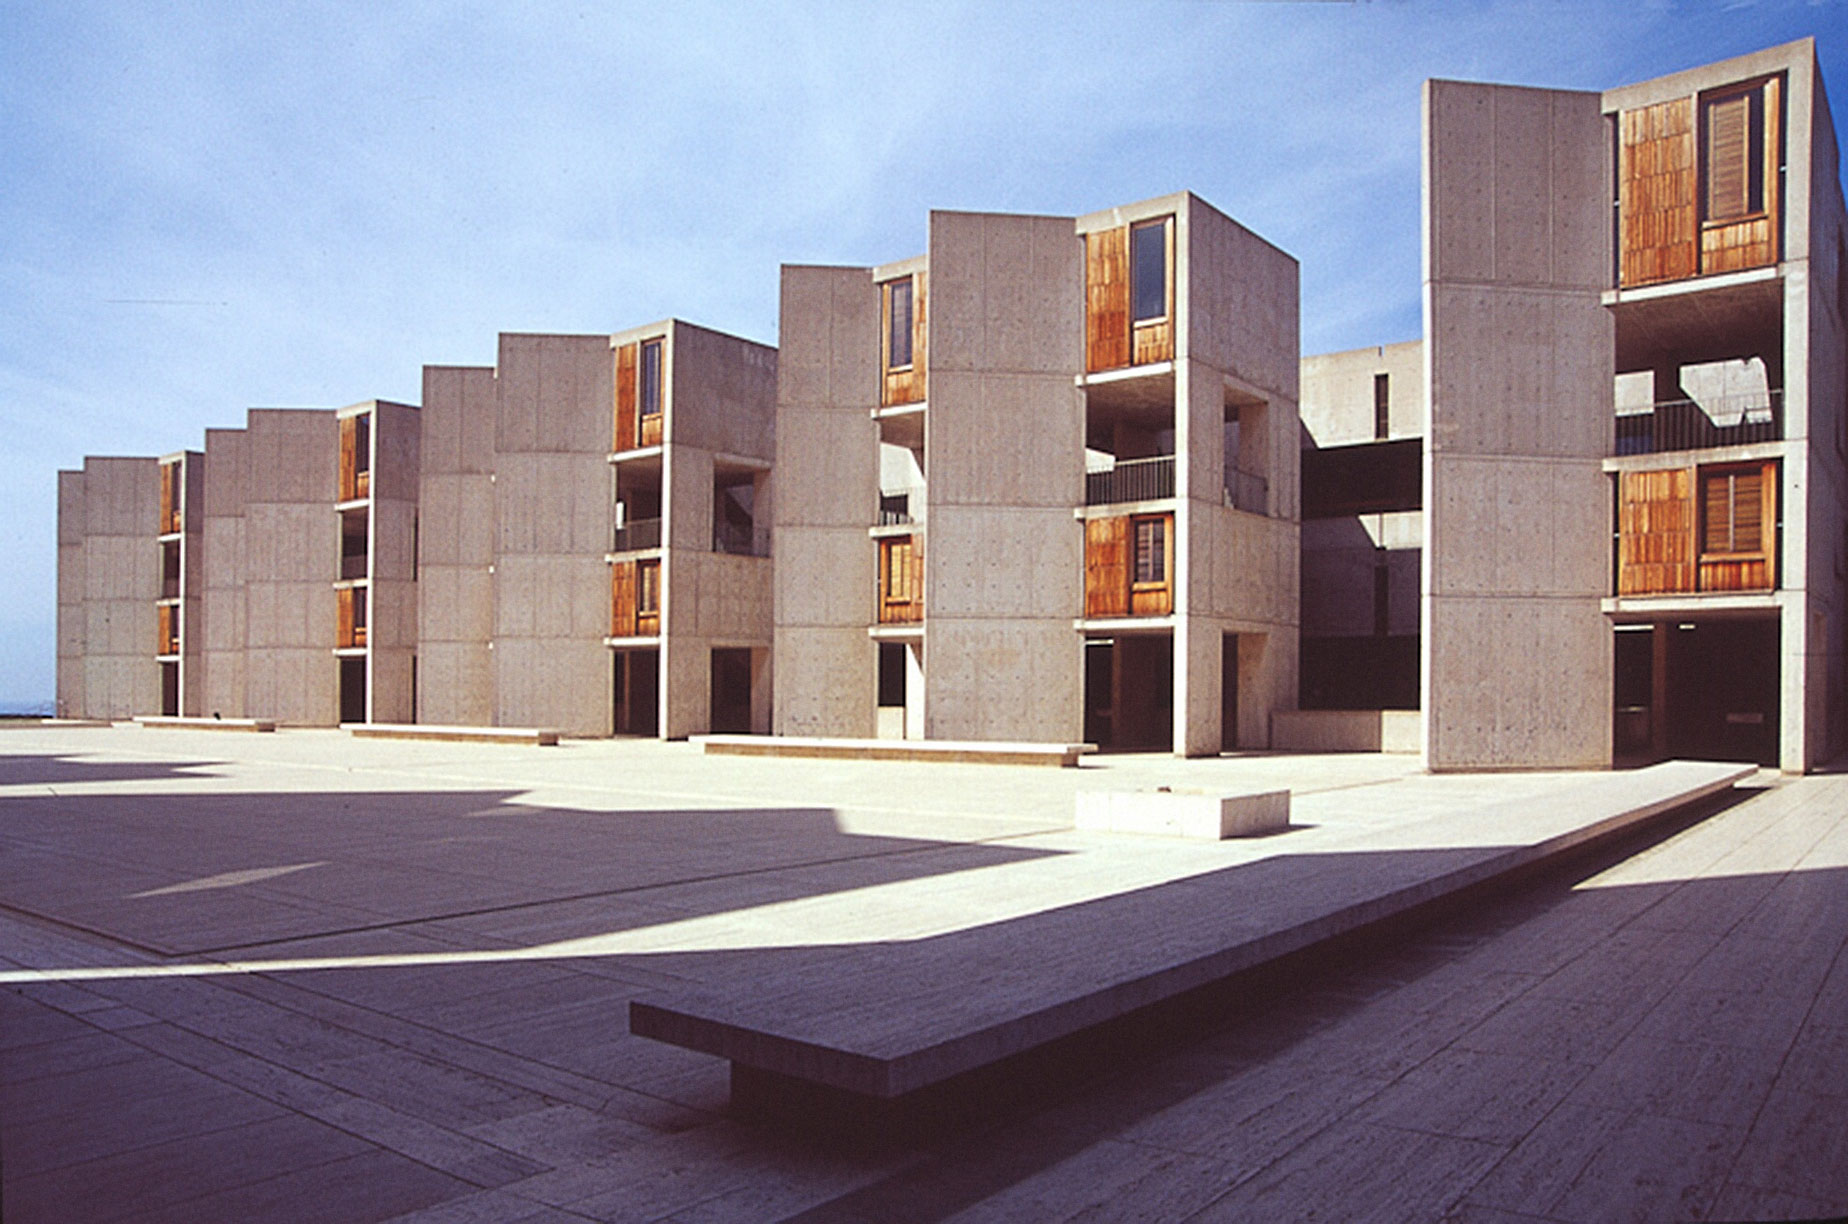 an analysis of the louis isadore kahn and the salk institute Louis kahn, salk institute, plans & section pinterest explore louis kahn, architecture drawings, and more louis isadore kahn - laboratorios salk y richards.